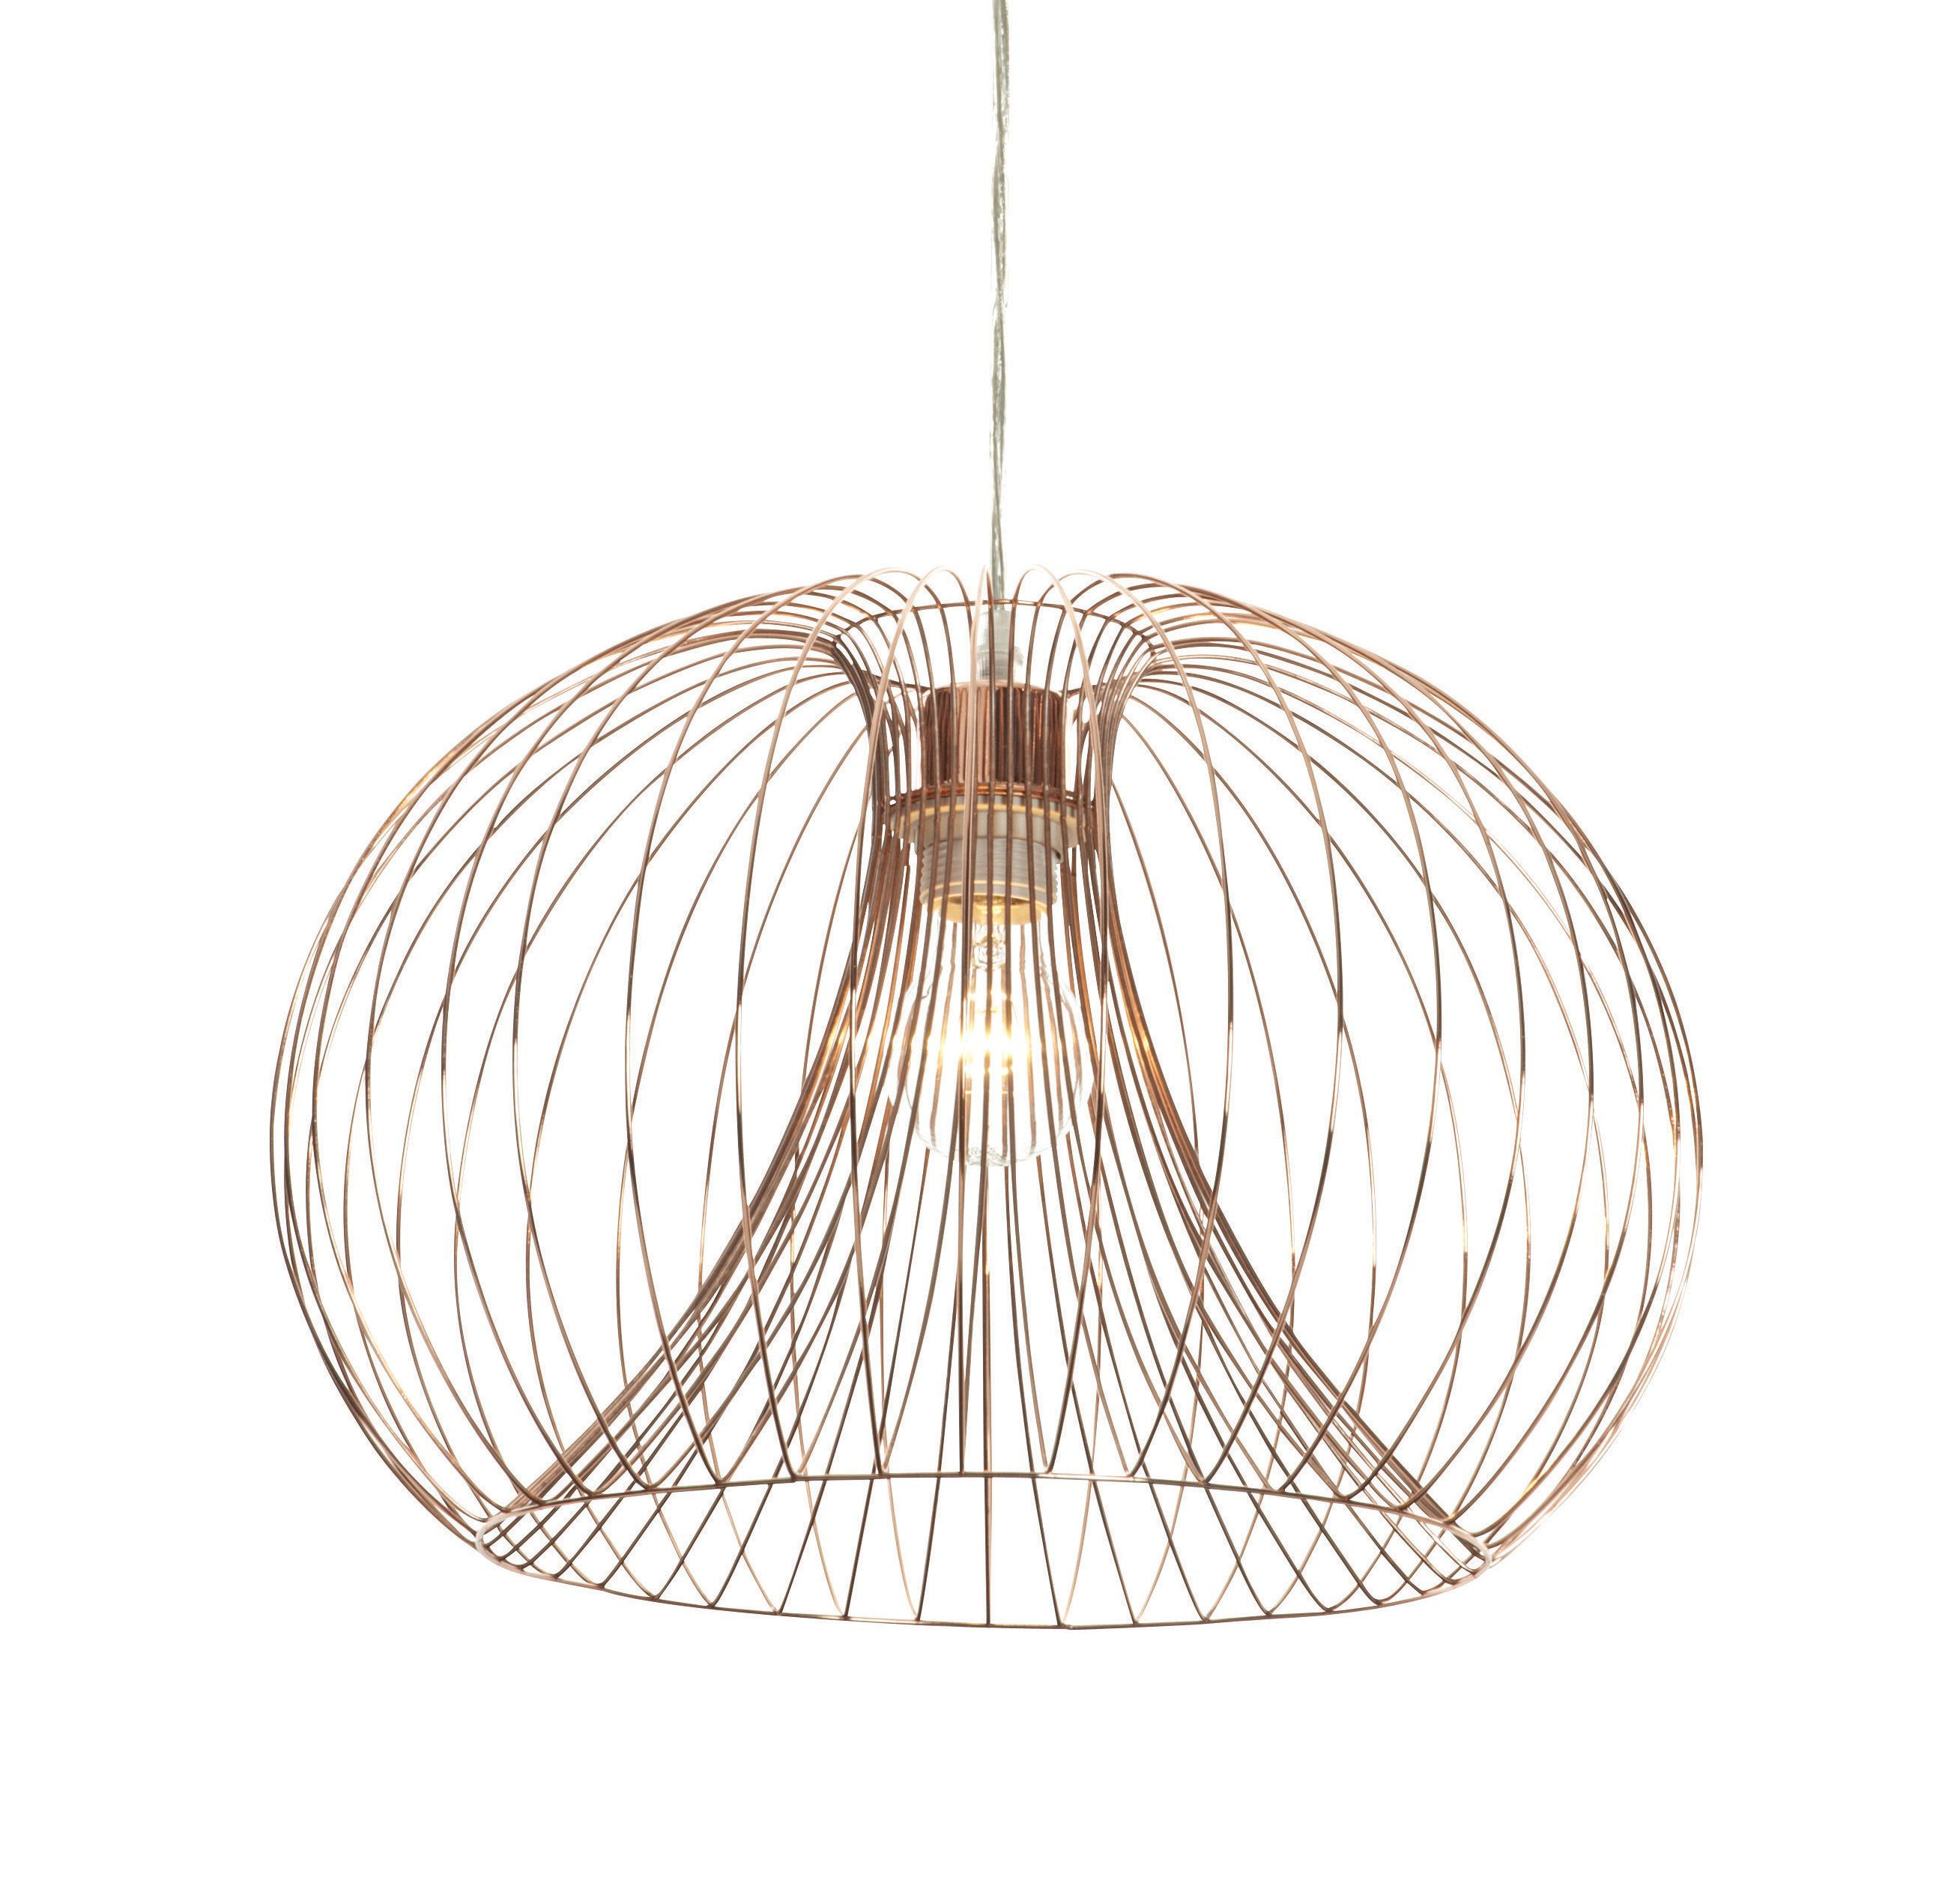 Jonas Copper Wire Pendant Ceiling Light Departments Diy At Bq Rewiring Old Ligthing Fixture With Pull Switch Doityourselfcom